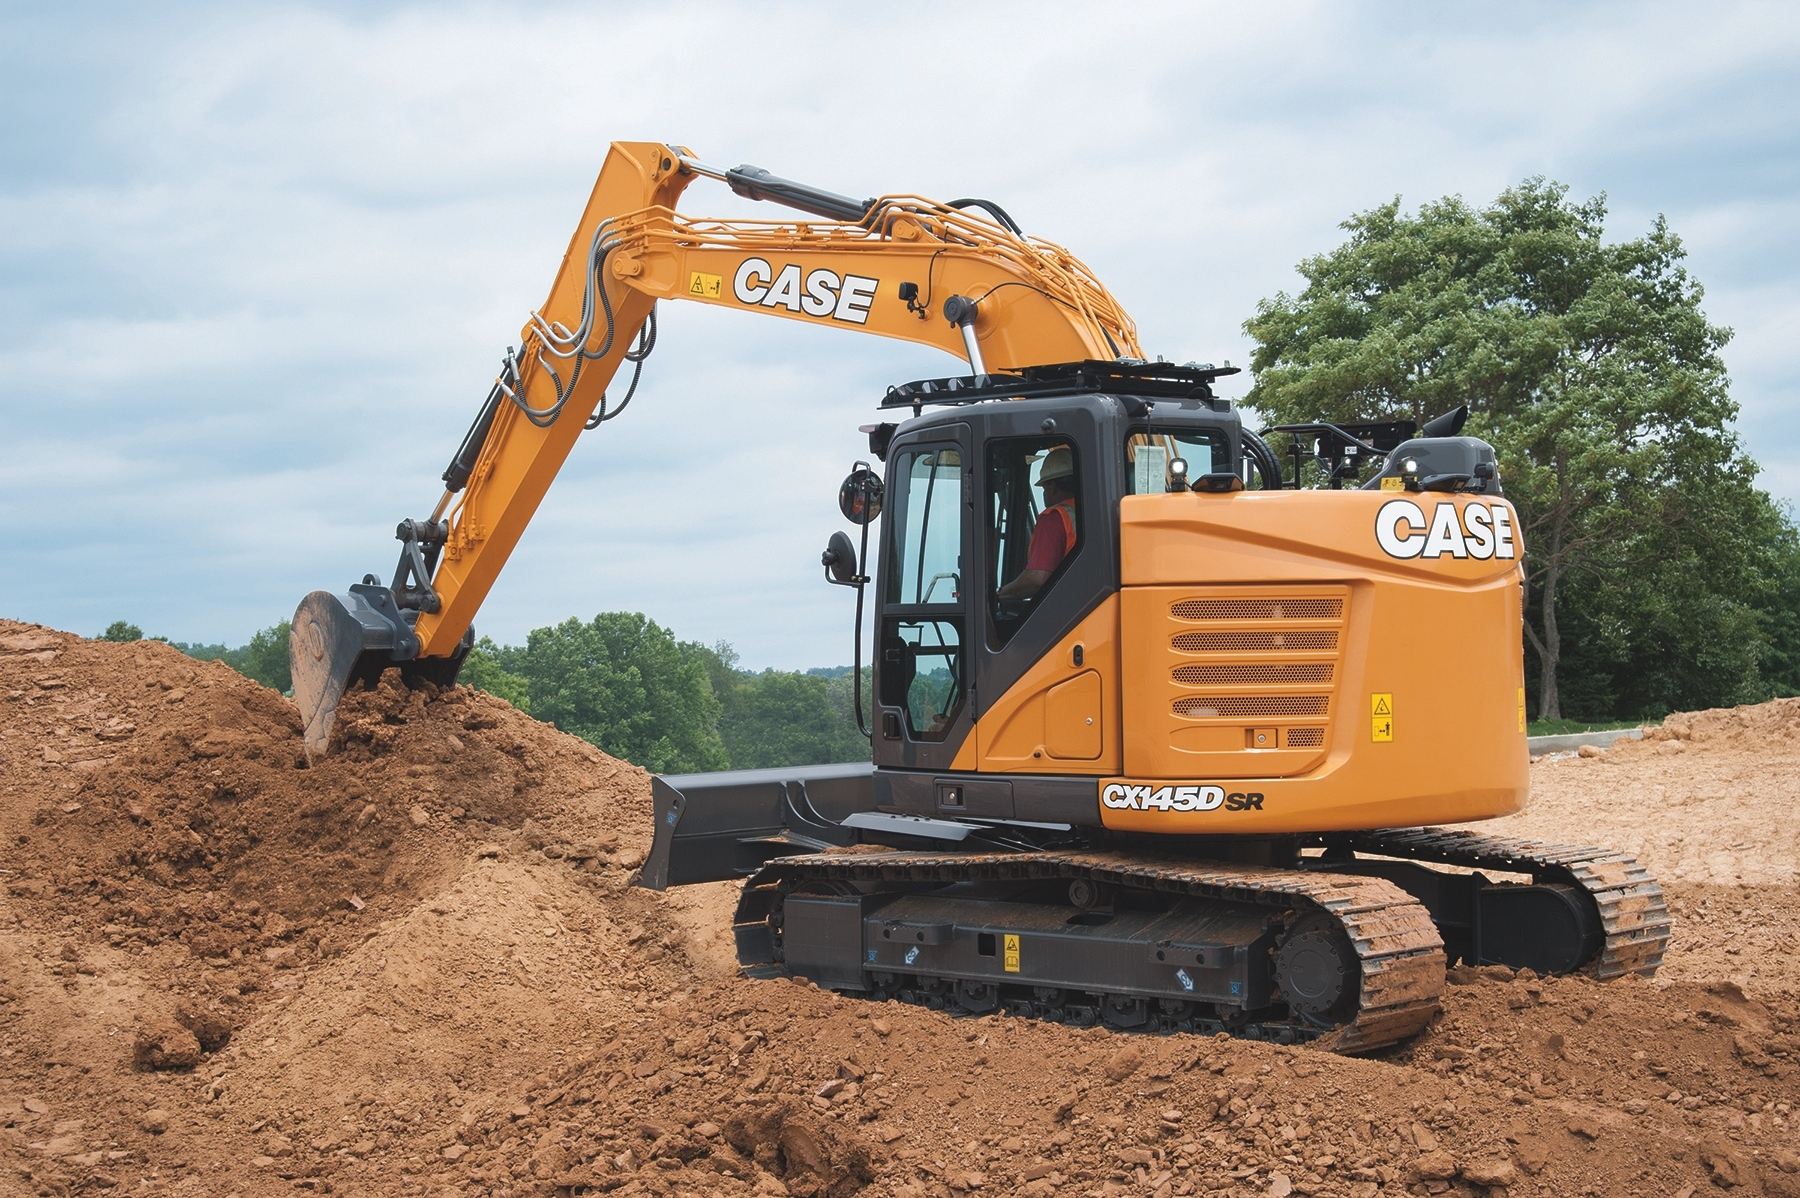 Case intros CX145D SR excavator with more power, improved cab